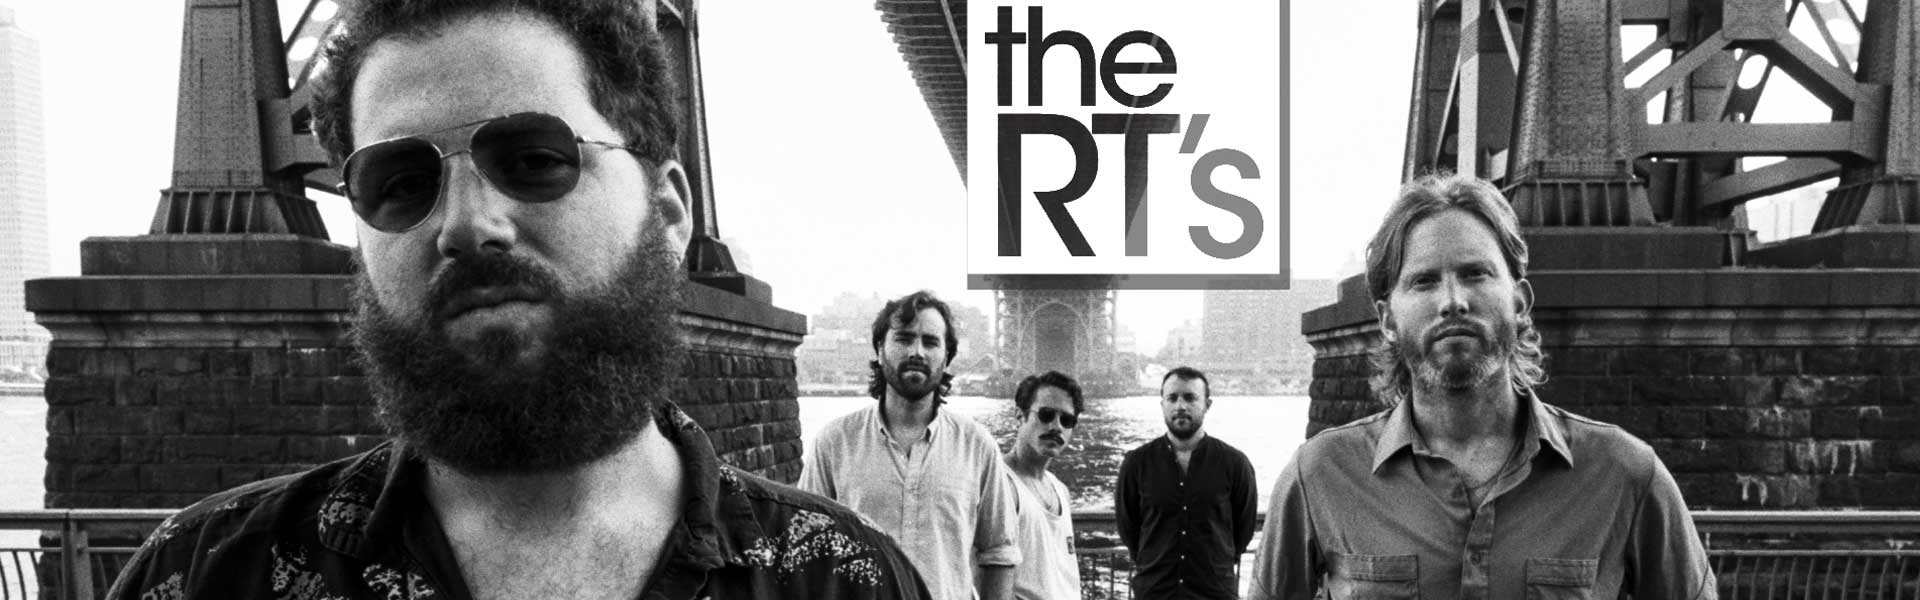 Picture of music group The RT's